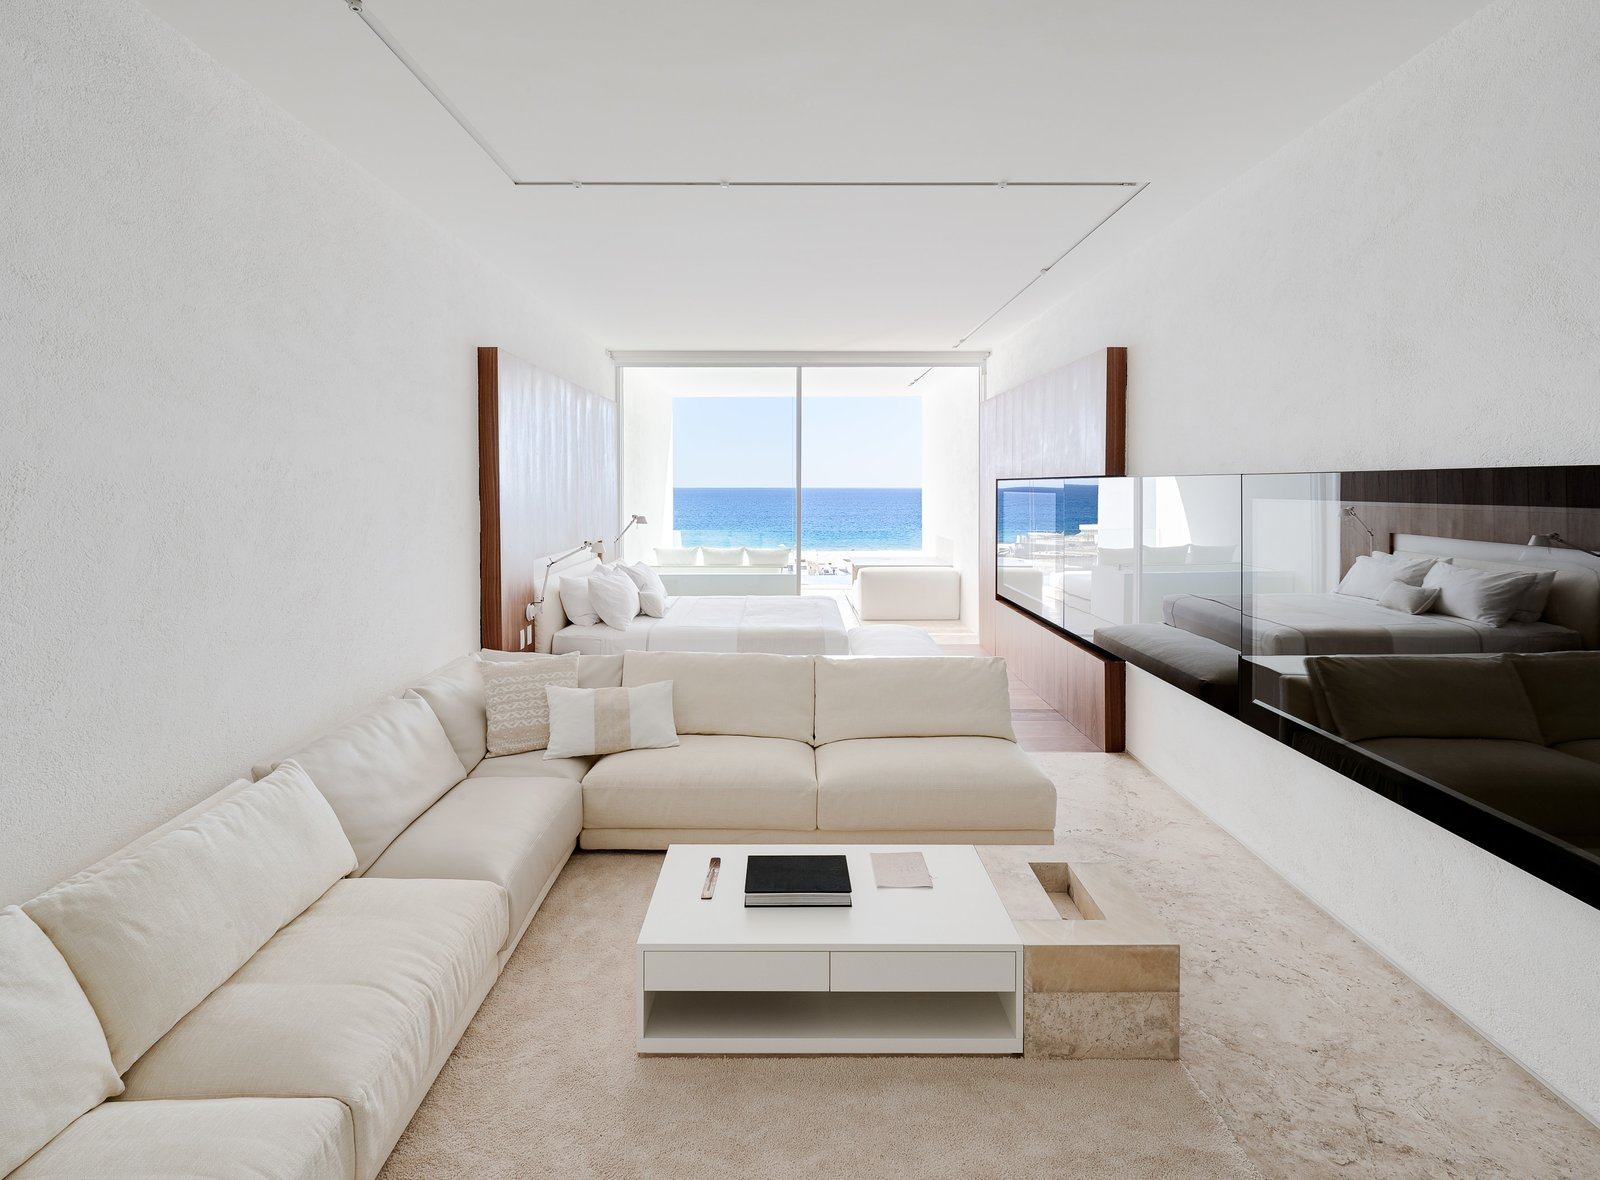 Bed, Living Room, Medium Hardwood Floor, Carpet Floor, Sectional, and Coffee Tables White travertine floors, neutral furnishings, and soft wood tones keep the emphasis on nature, the view, and the sensory experience of being on the ocean.  Photo 10 of 12 in An Exquisite Beach Resort on Baja California Sur Lies Where the Water Meets the Horizon